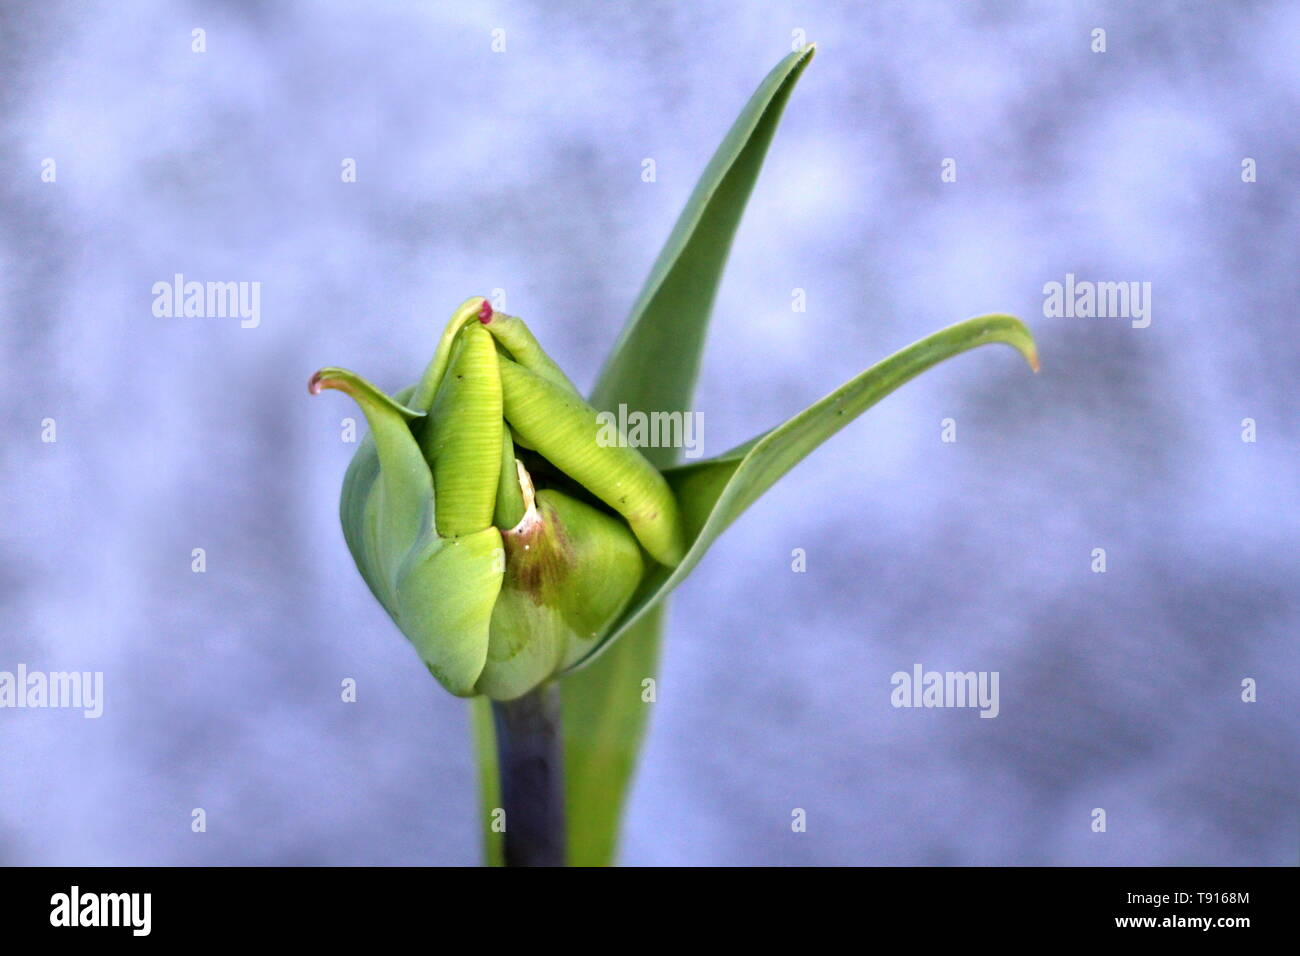 Fully closed young light green tulip flower surrounded with pointy elongated leaves on warm spring day - Stock Image